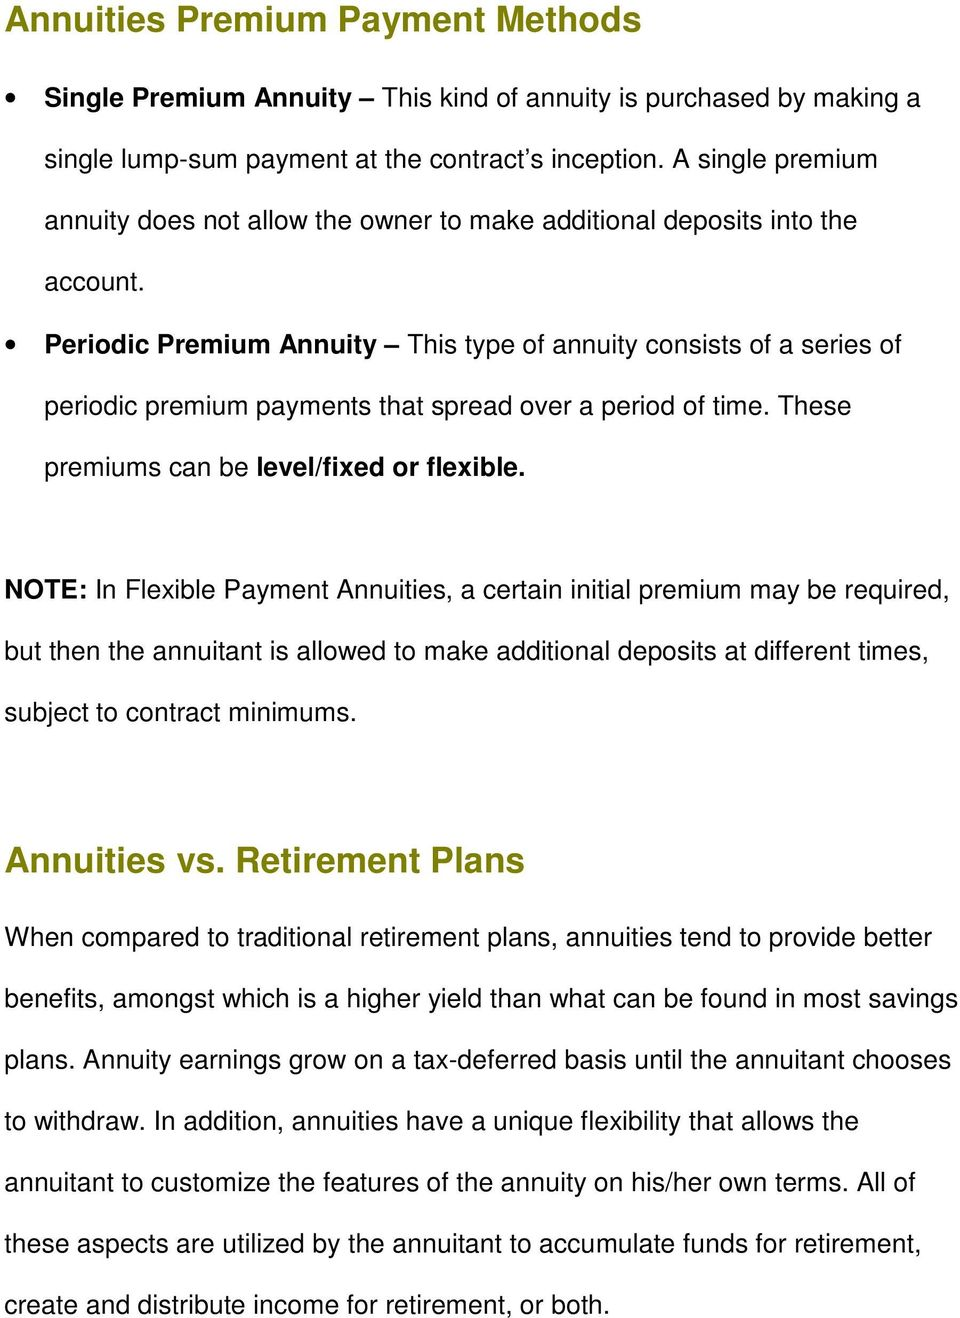 Periodic Premium Annuity This type of annuity consists of a series of periodic premium payments that spread over a period of time. These premiums can be level/fixed or flexible.